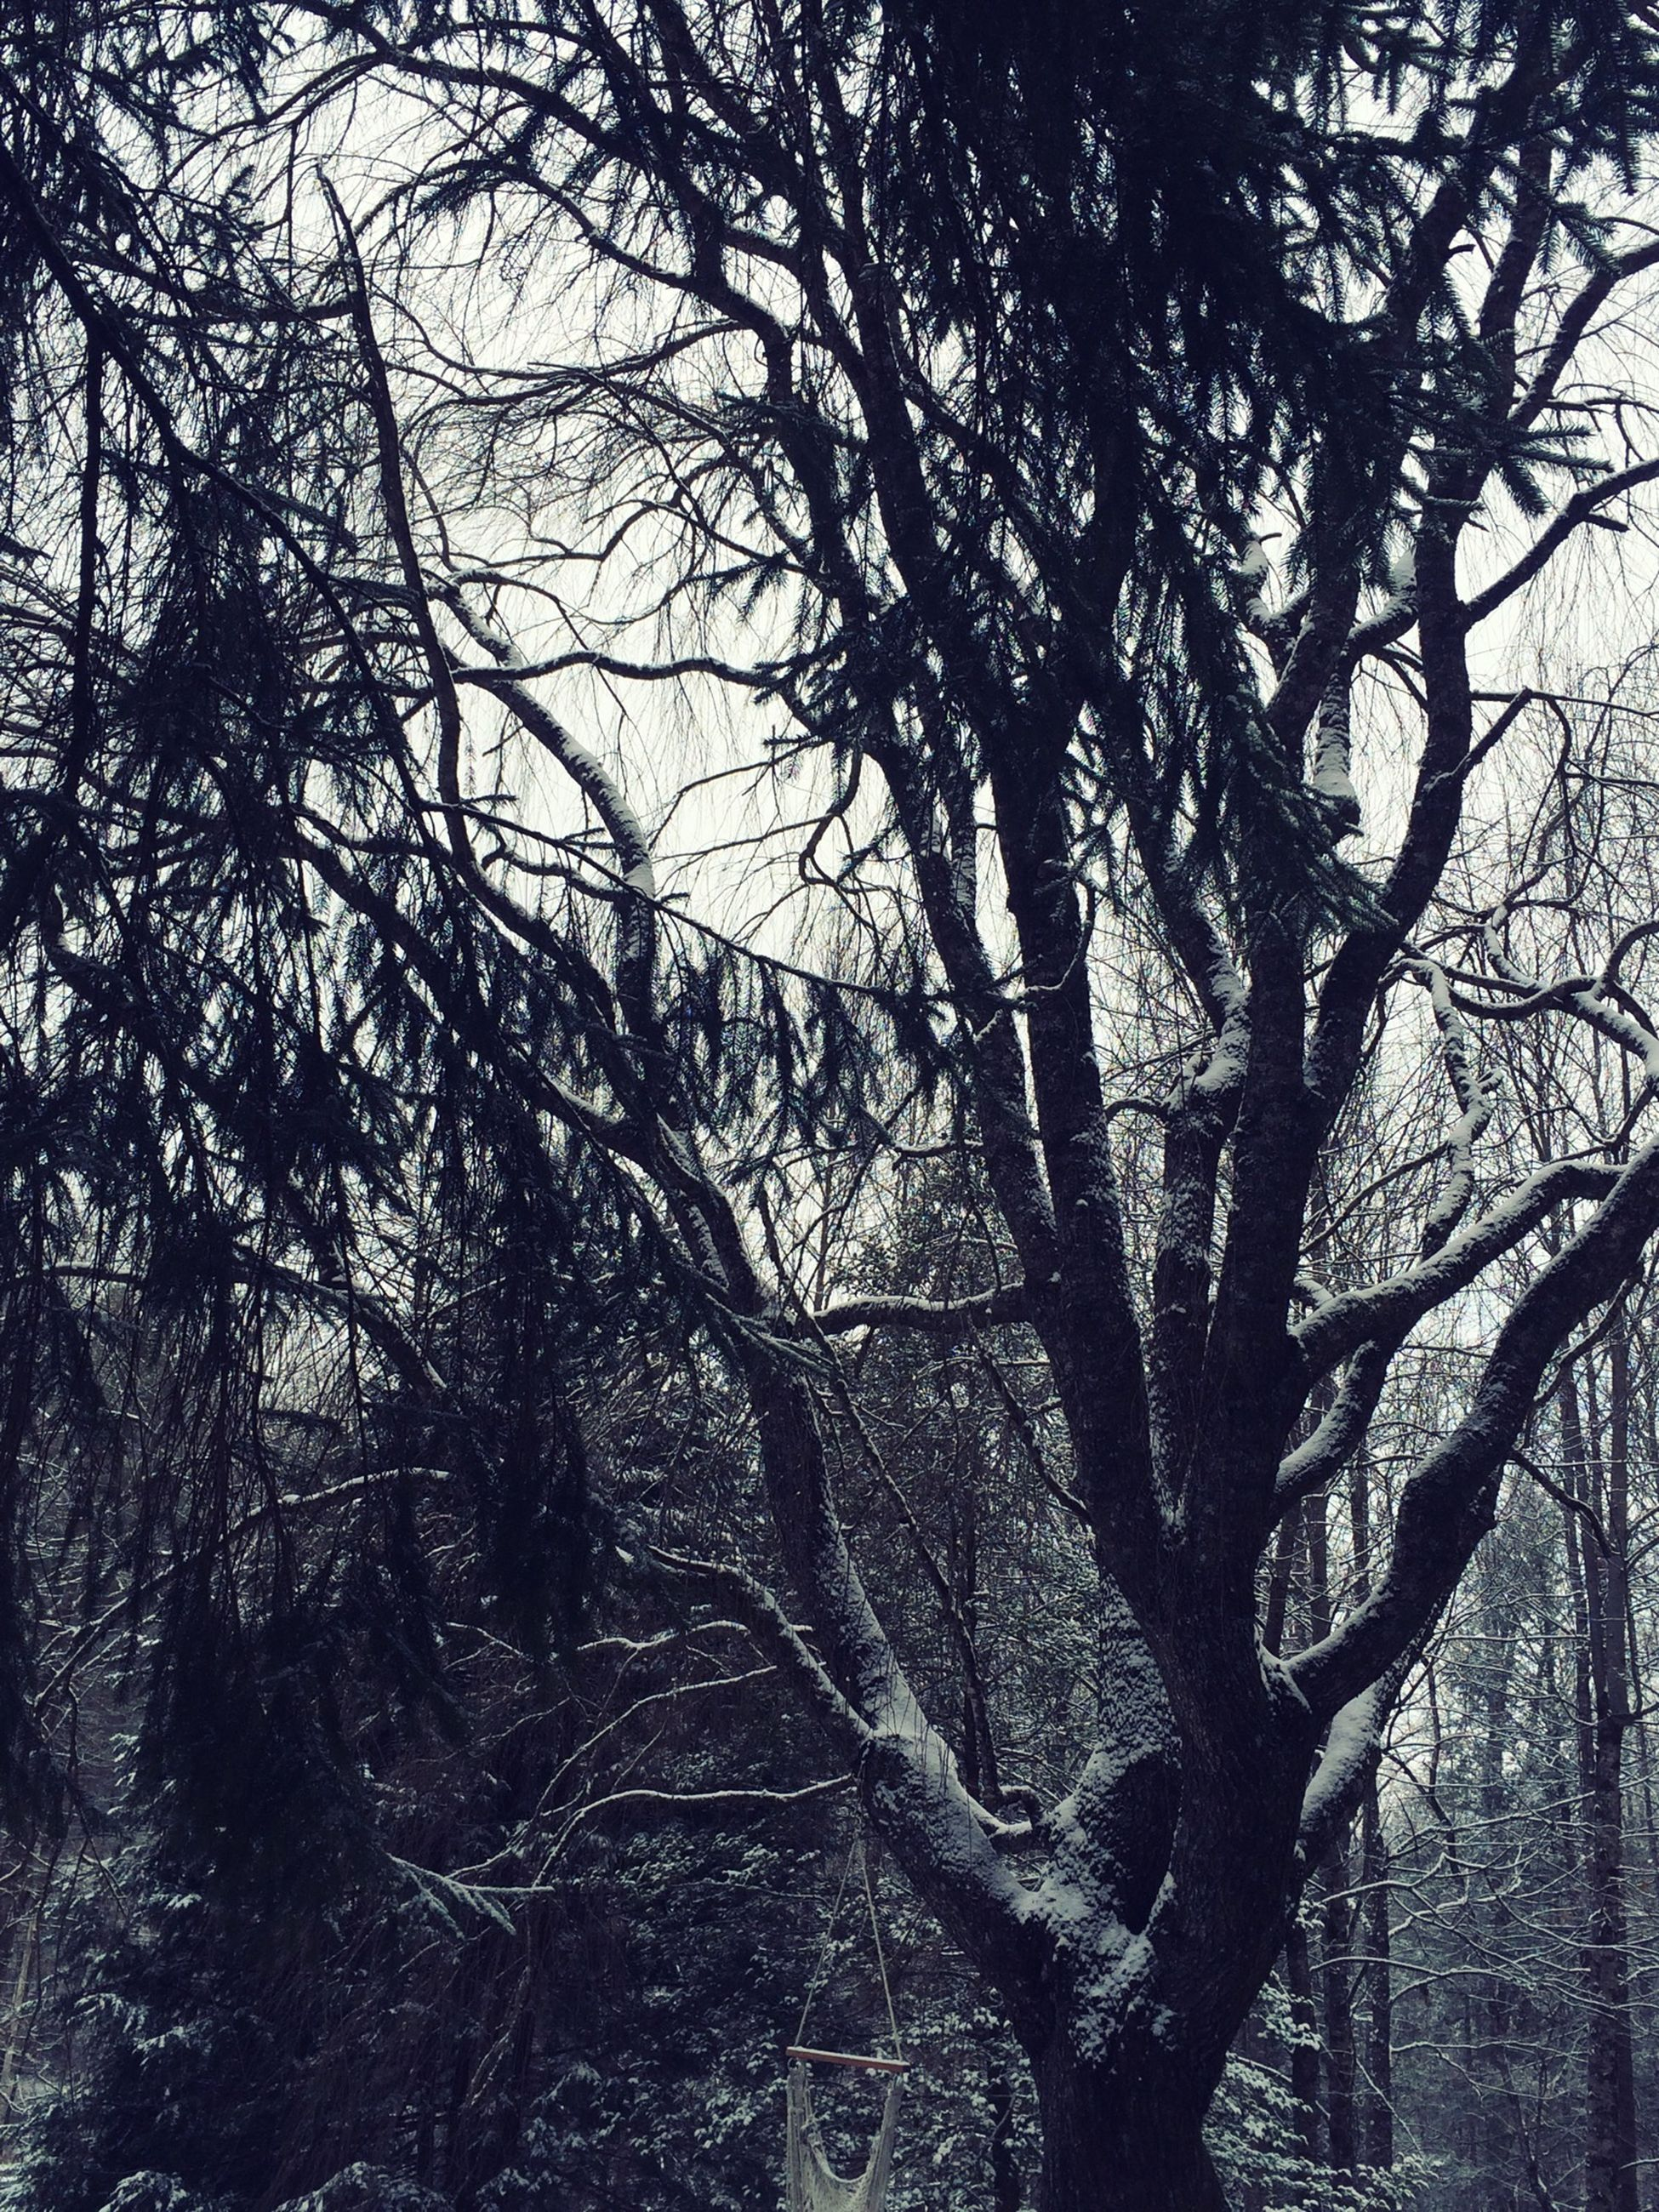 bare tree, tree, branch, tranquility, tree trunk, nature, tranquil scene, scenics, beauty in nature, sky, winter, low angle view, forest, outdoors, season, day, growth, no people, cold temperature, non-urban scene